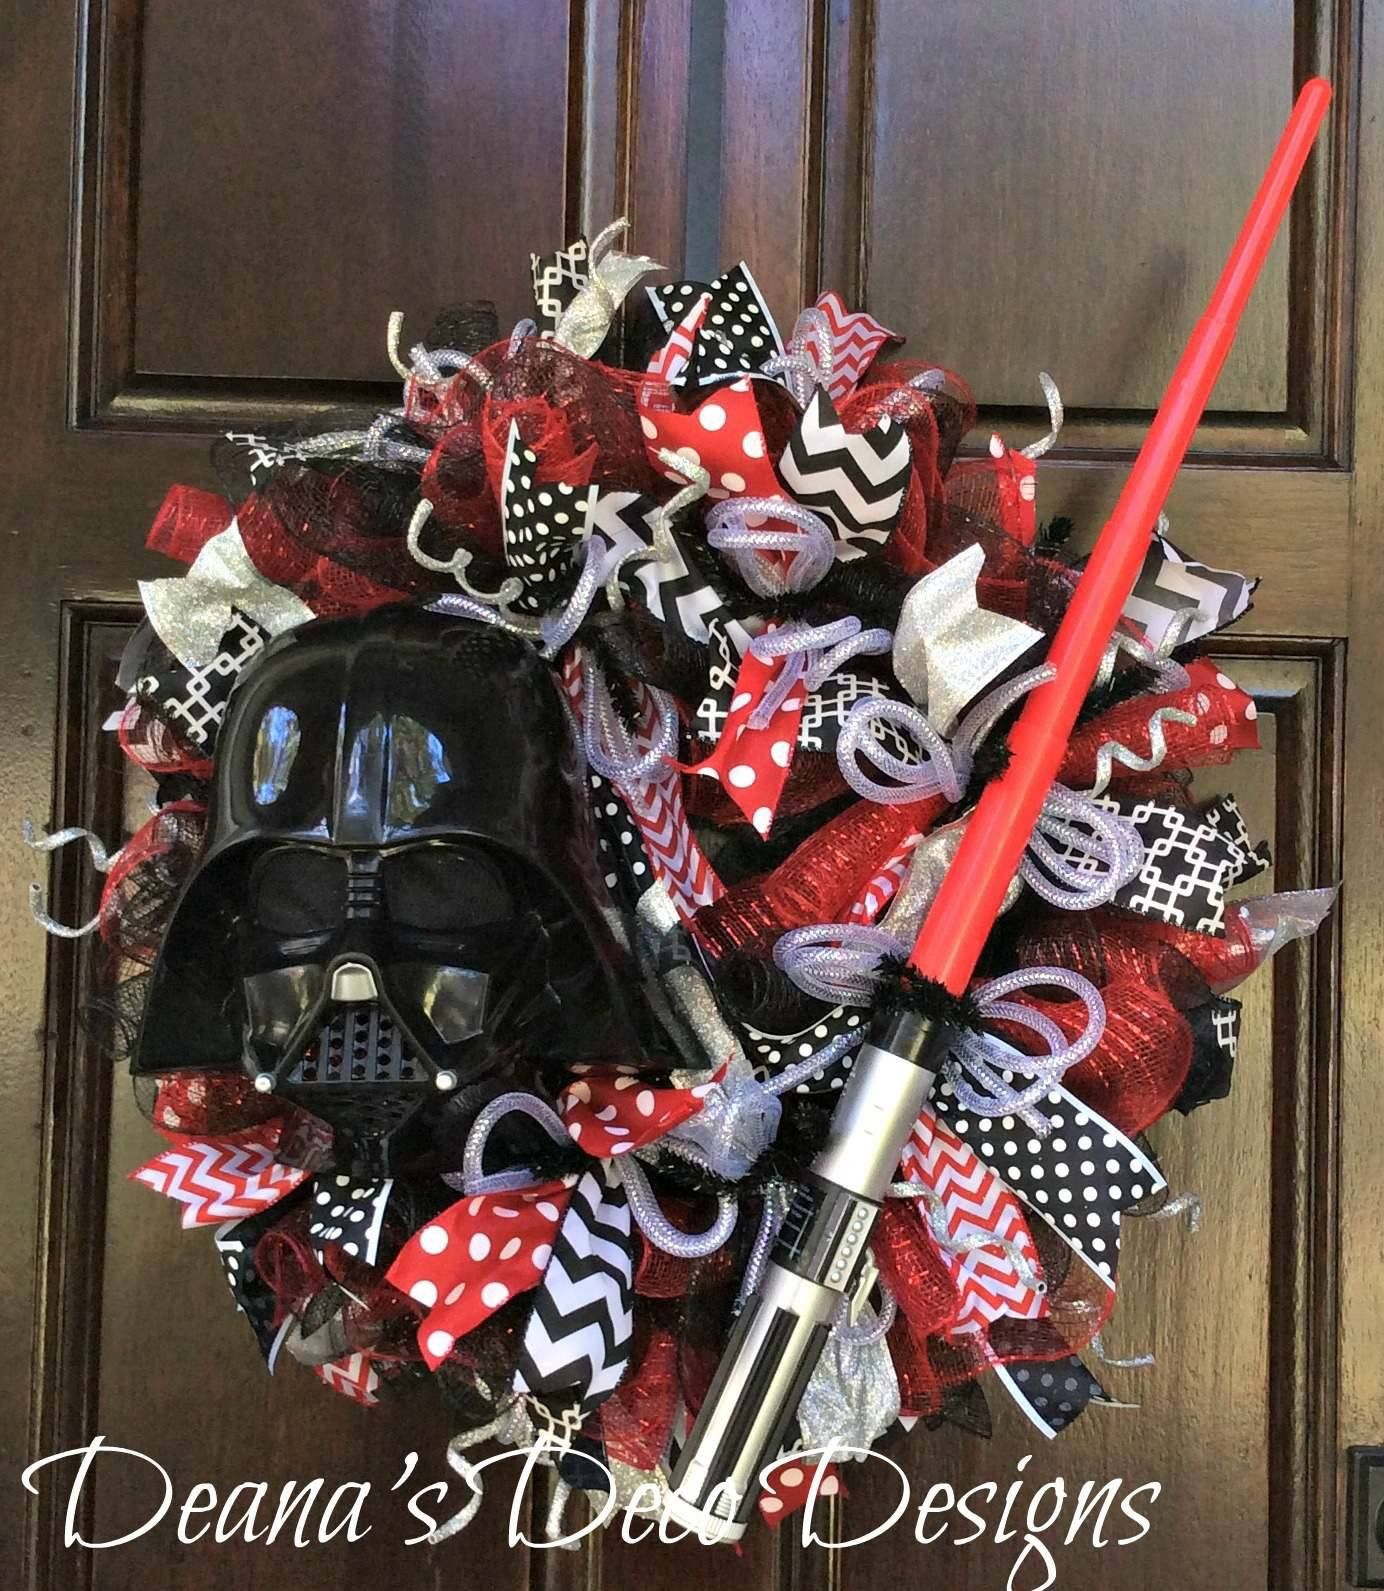 star wars darth vader deco mesh wreath xmas 2017 pinterest navidad marcos y flor. Black Bedroom Furniture Sets. Home Design Ideas